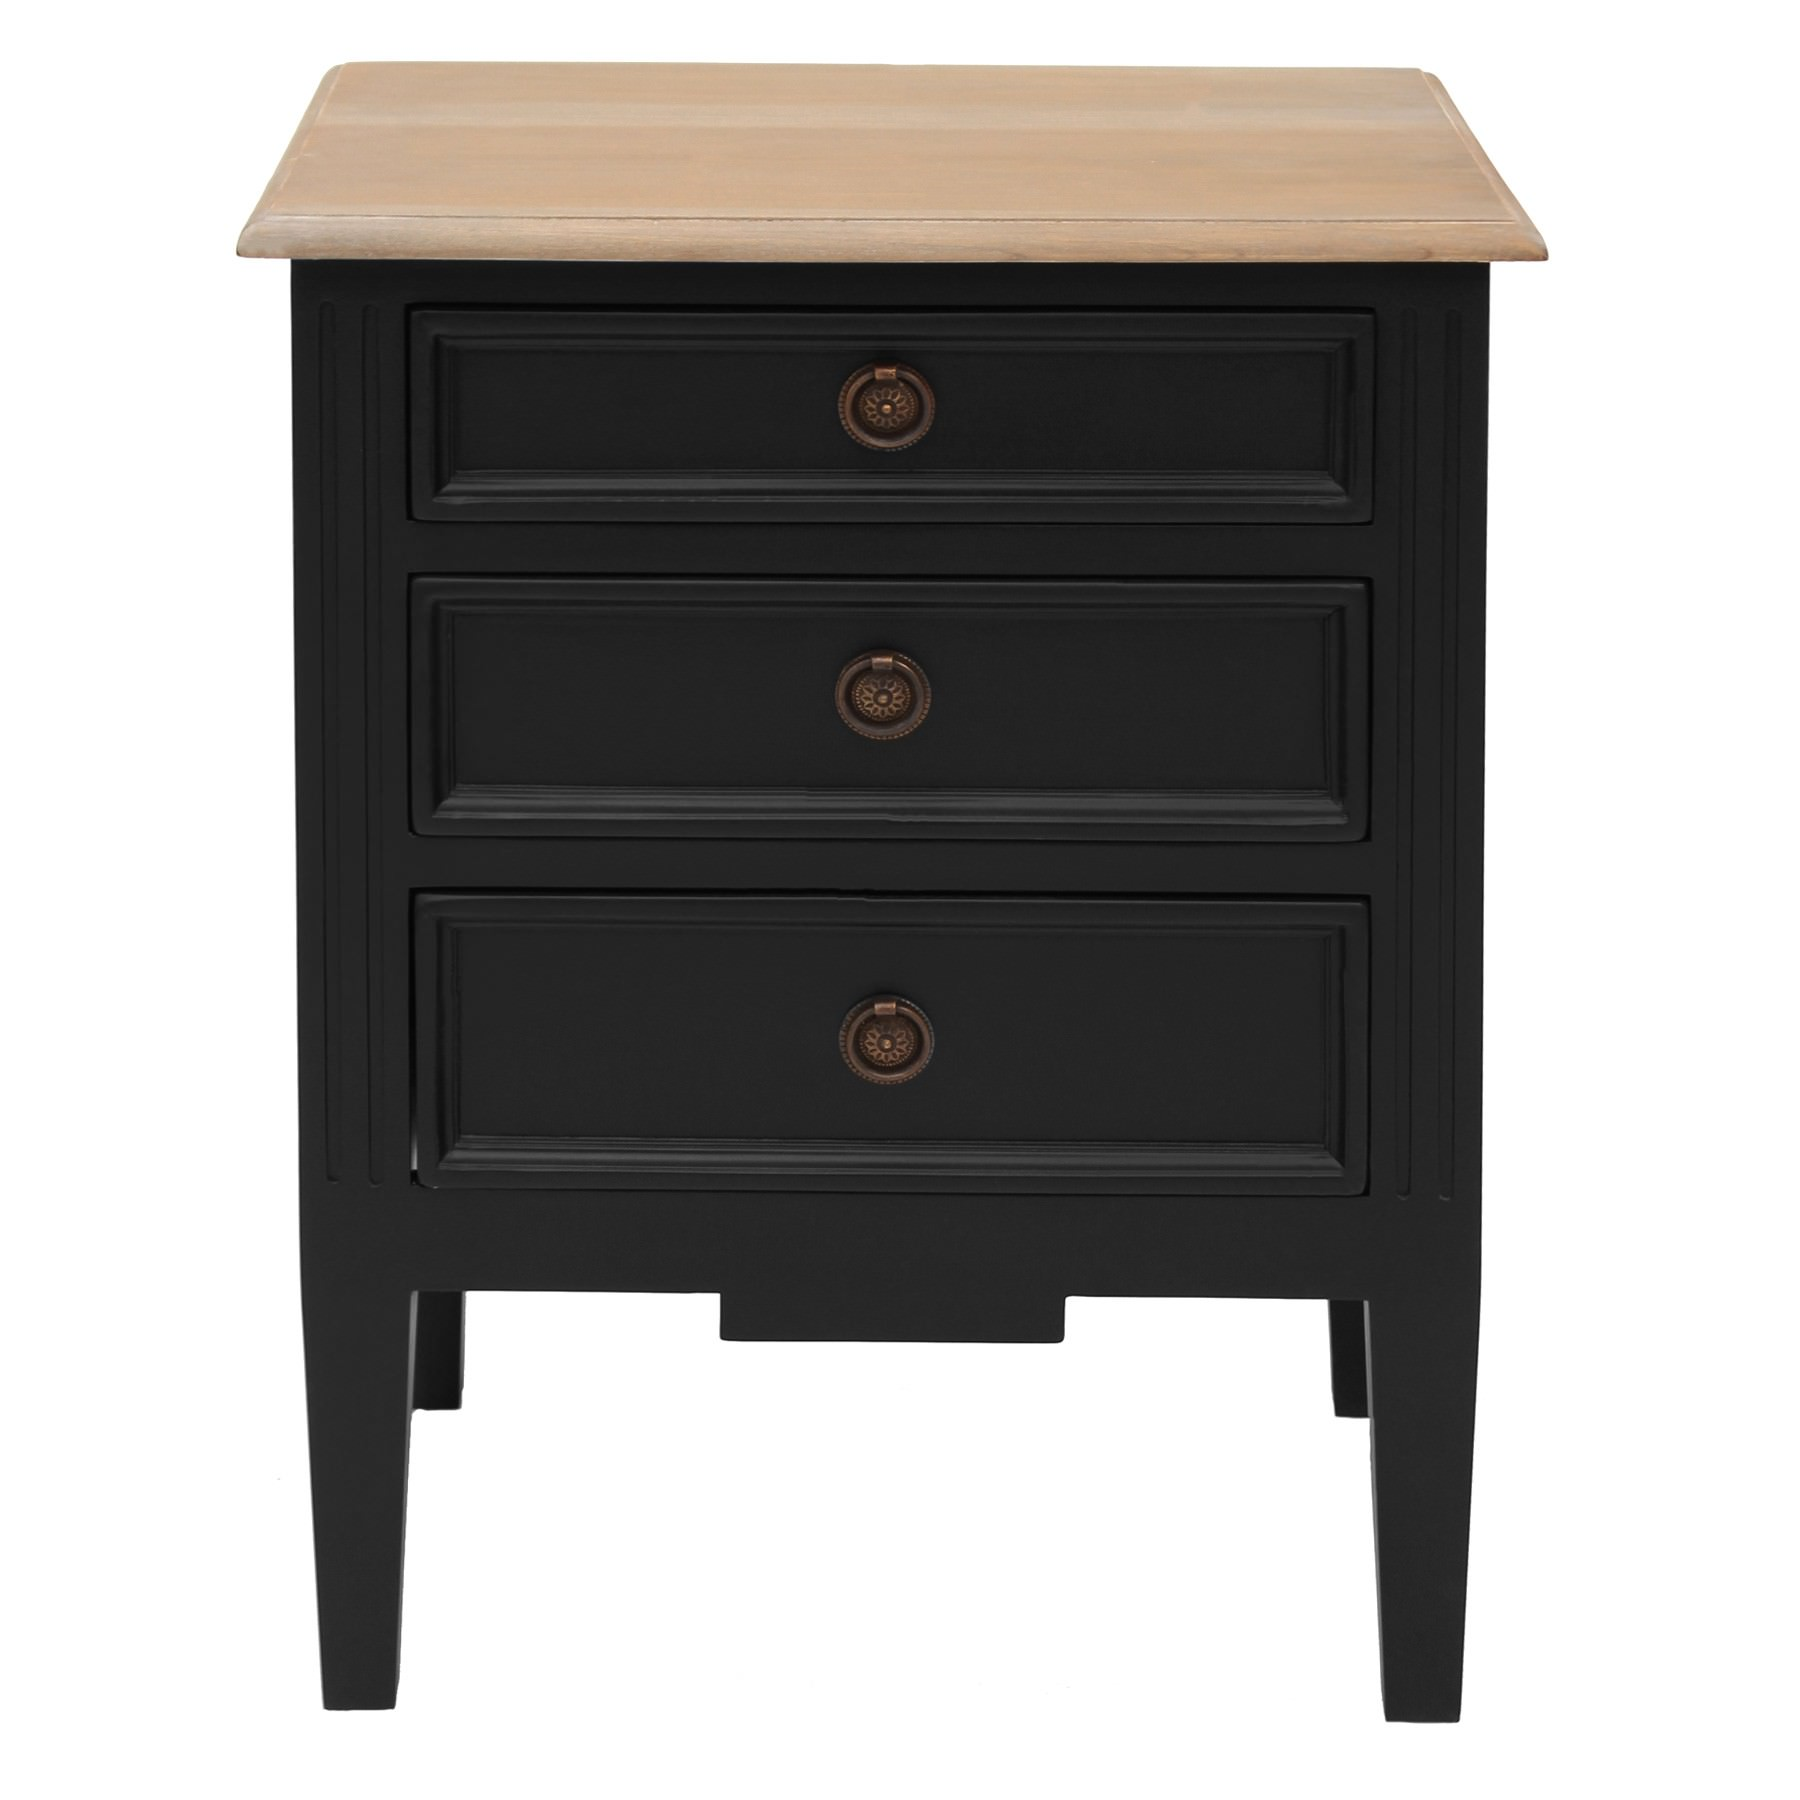 Belley Hand Crafted Mahogany Timber Bedside Table with Weathered Oak Top, Black